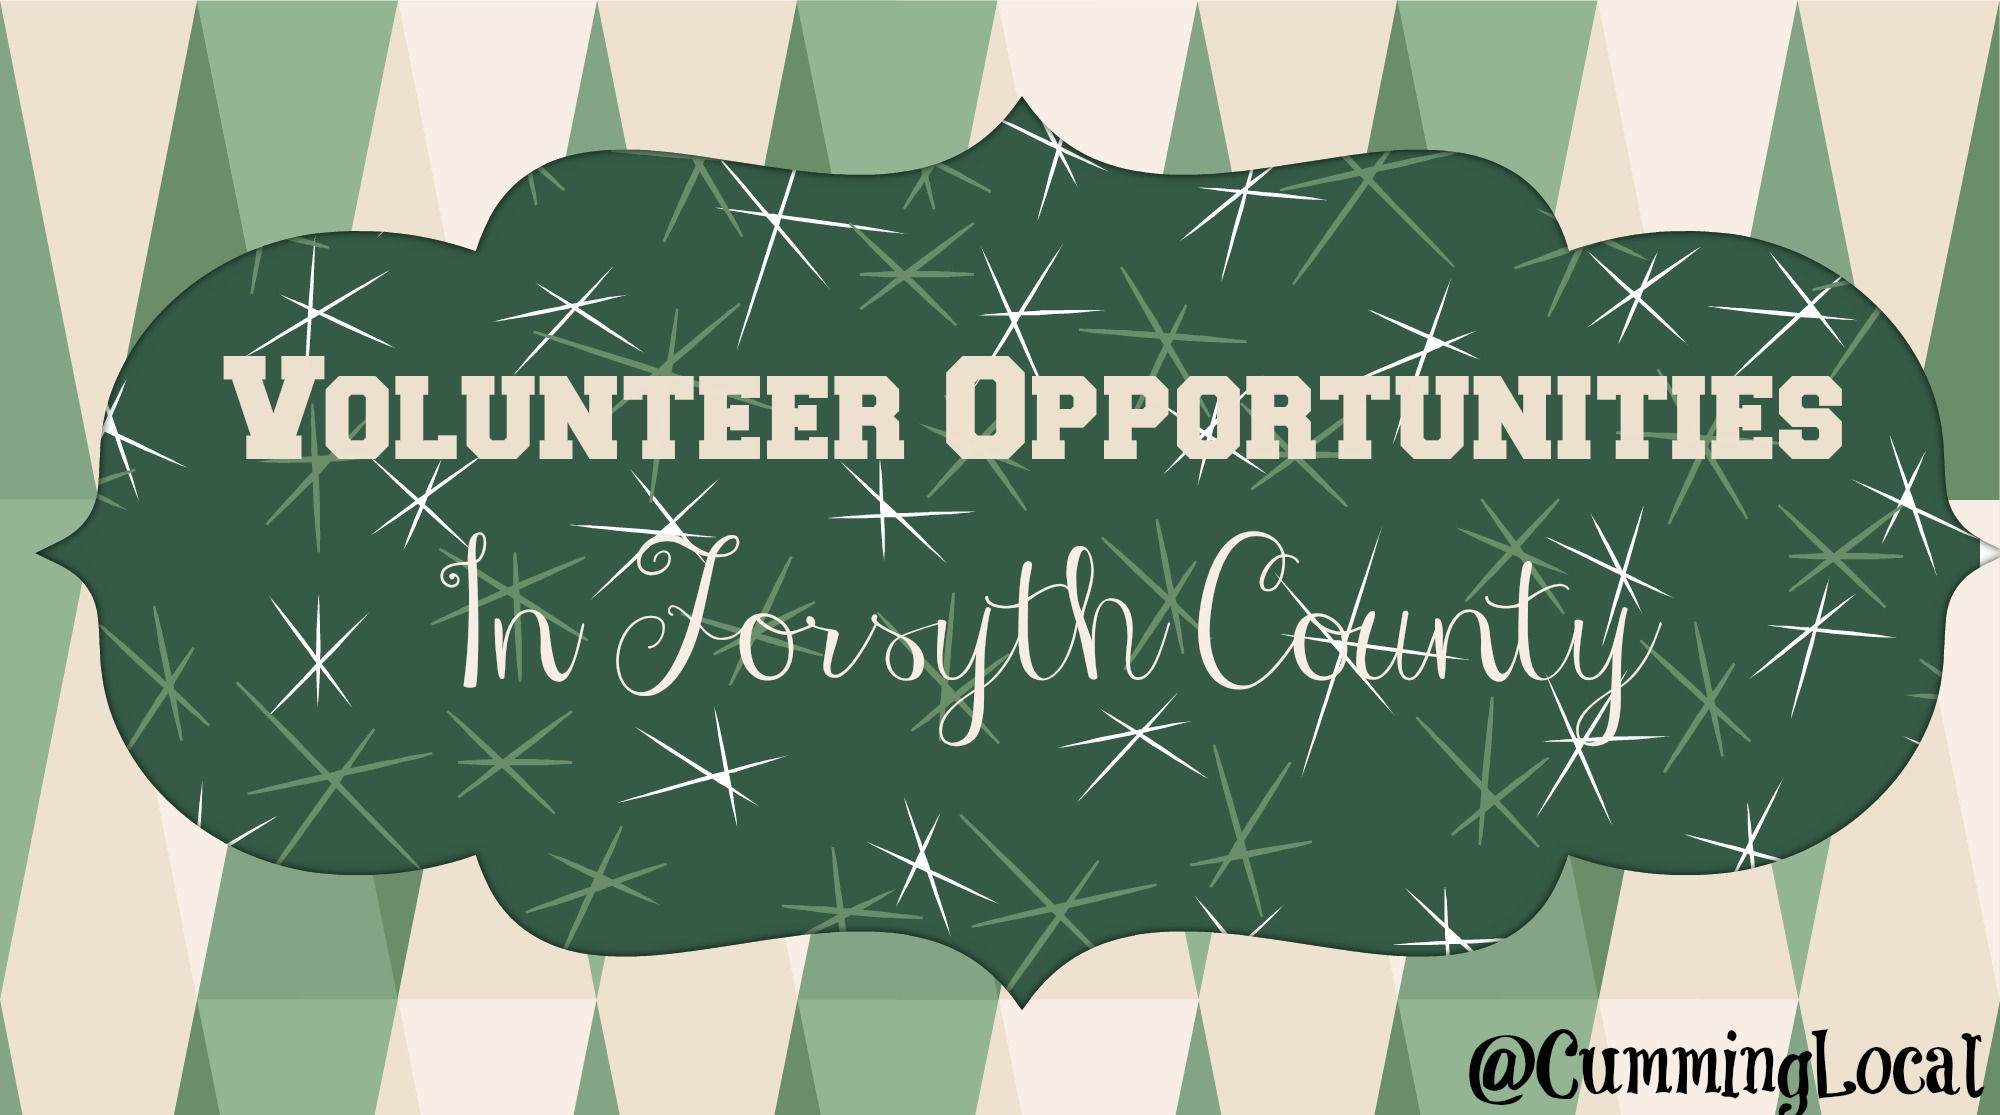 Volunteer Opportunities in Forsyth County 2015